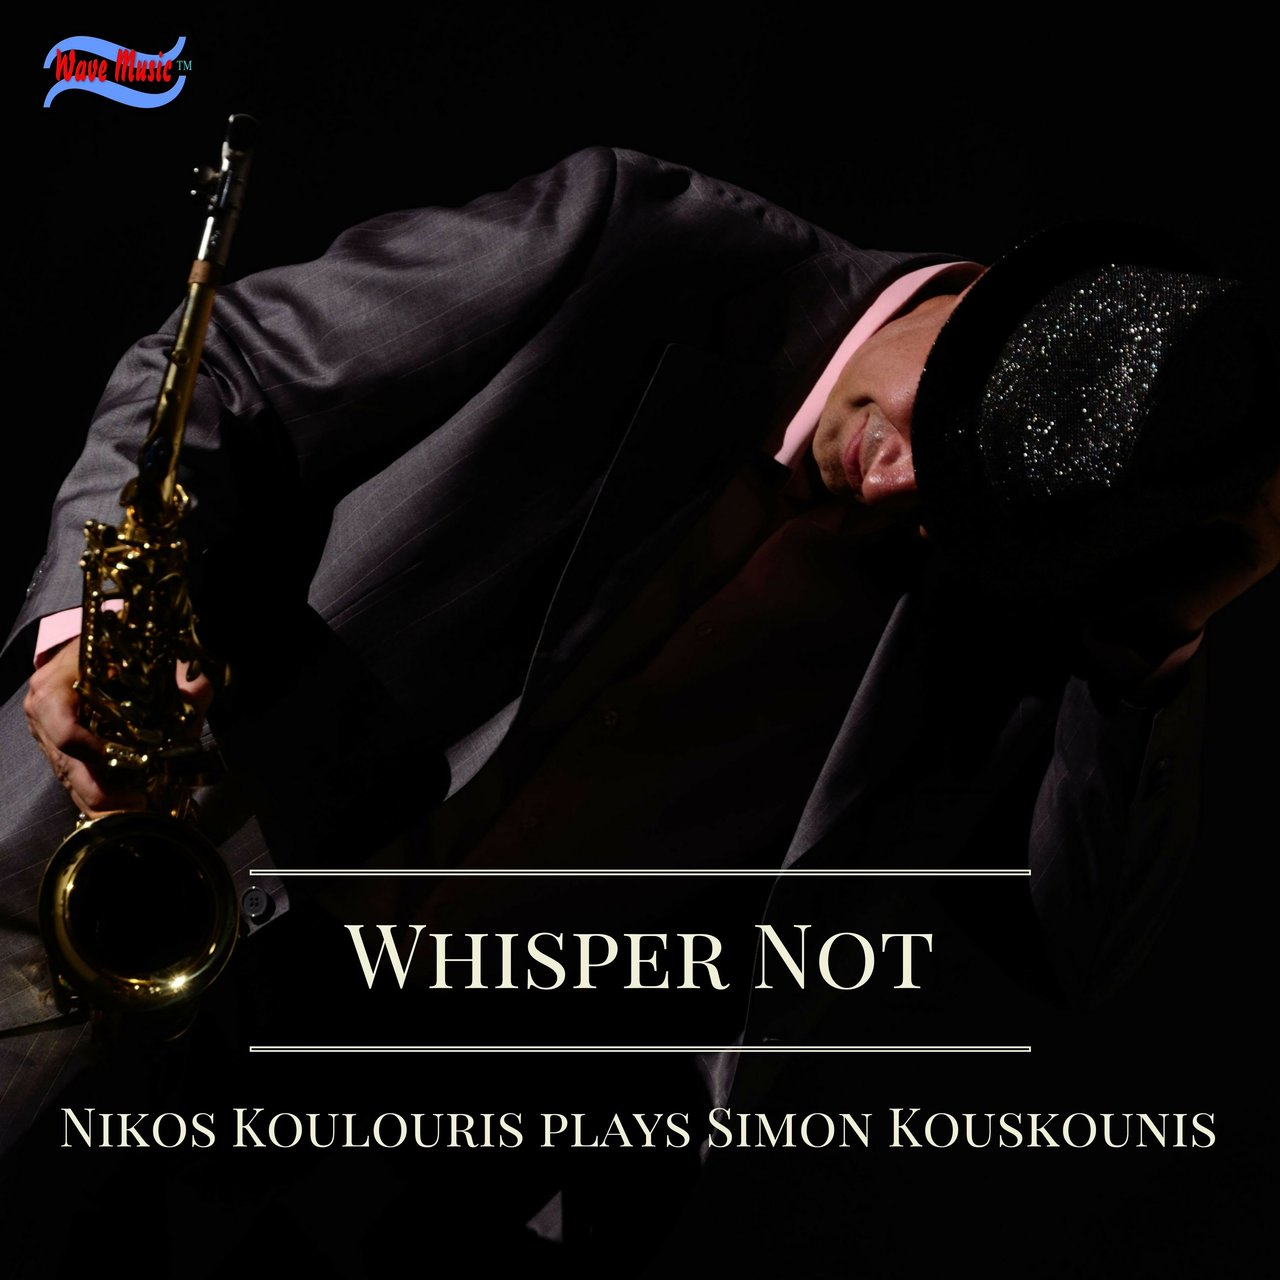 Whisper Not: Nikos Koulouris Plays Simon Kouskounis